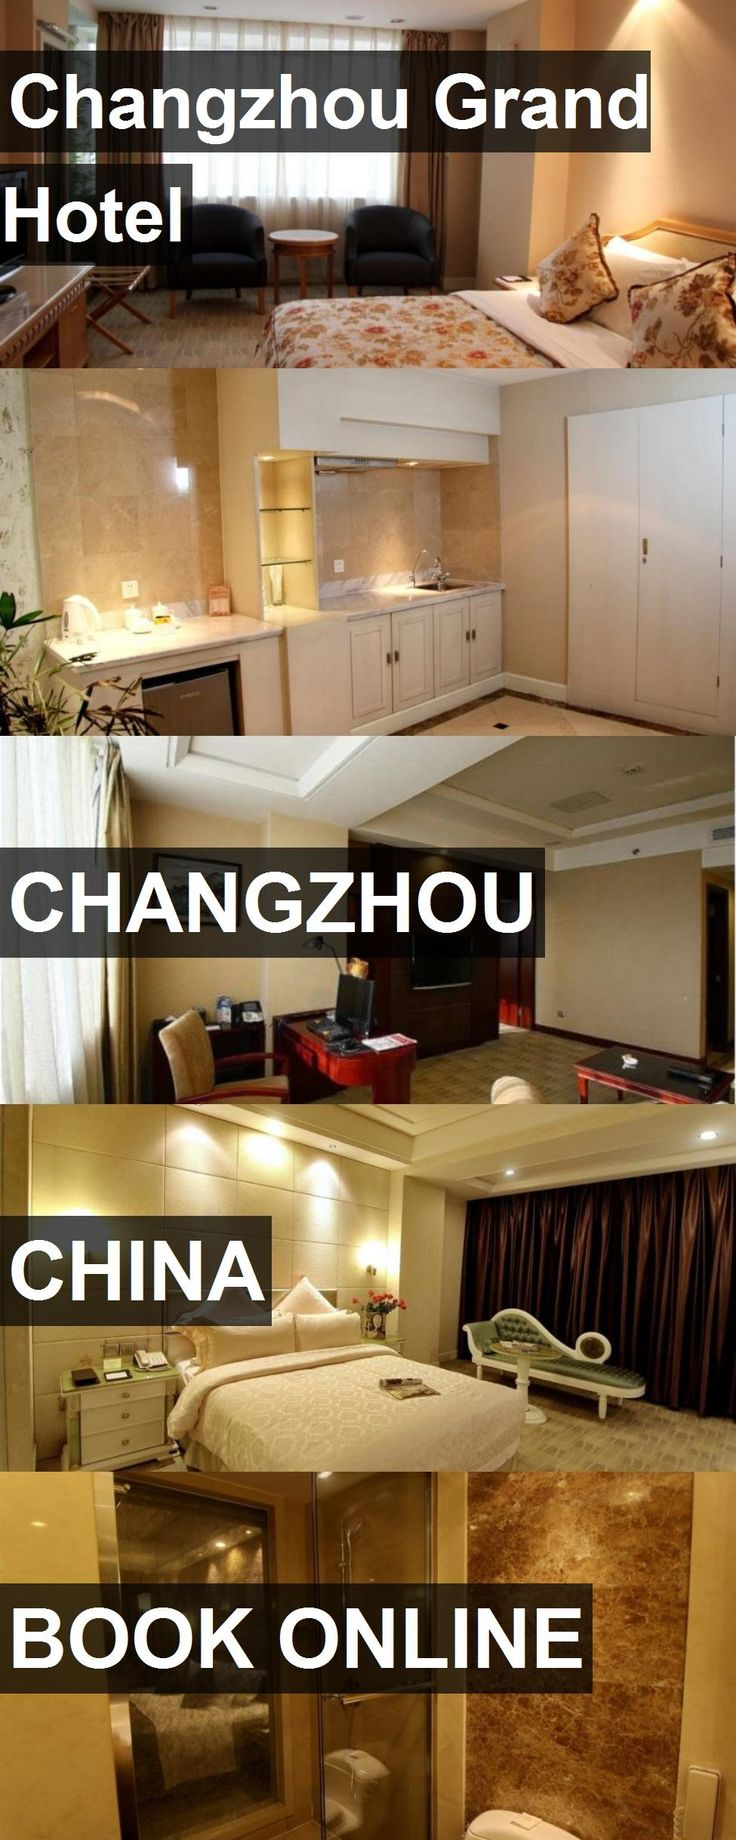 Hotel Changzhou Grand Hotel in Changzhou, China. For more information, photos, reviews and best prices please follow the link. #China #Changzhou #ChangzhouGrandHotel #hotel #travel #vacation